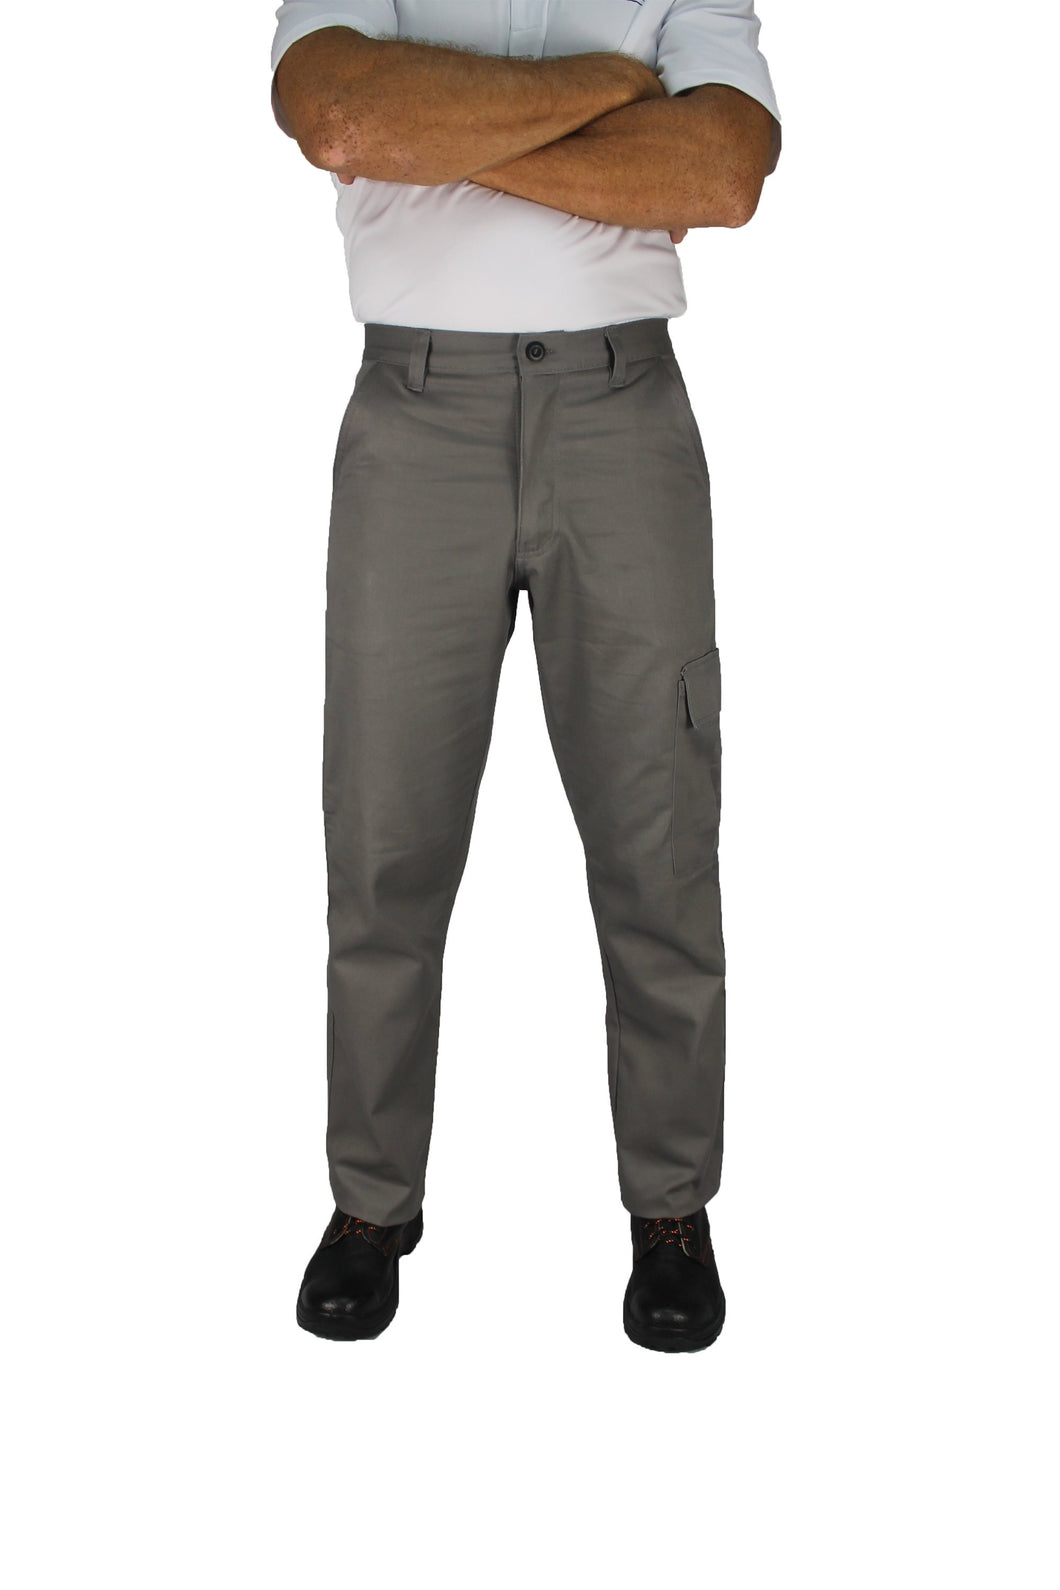 KP04 - Kolossus Original Fit 100% Cotton Utility Work Pant with Multipurpose Pockets